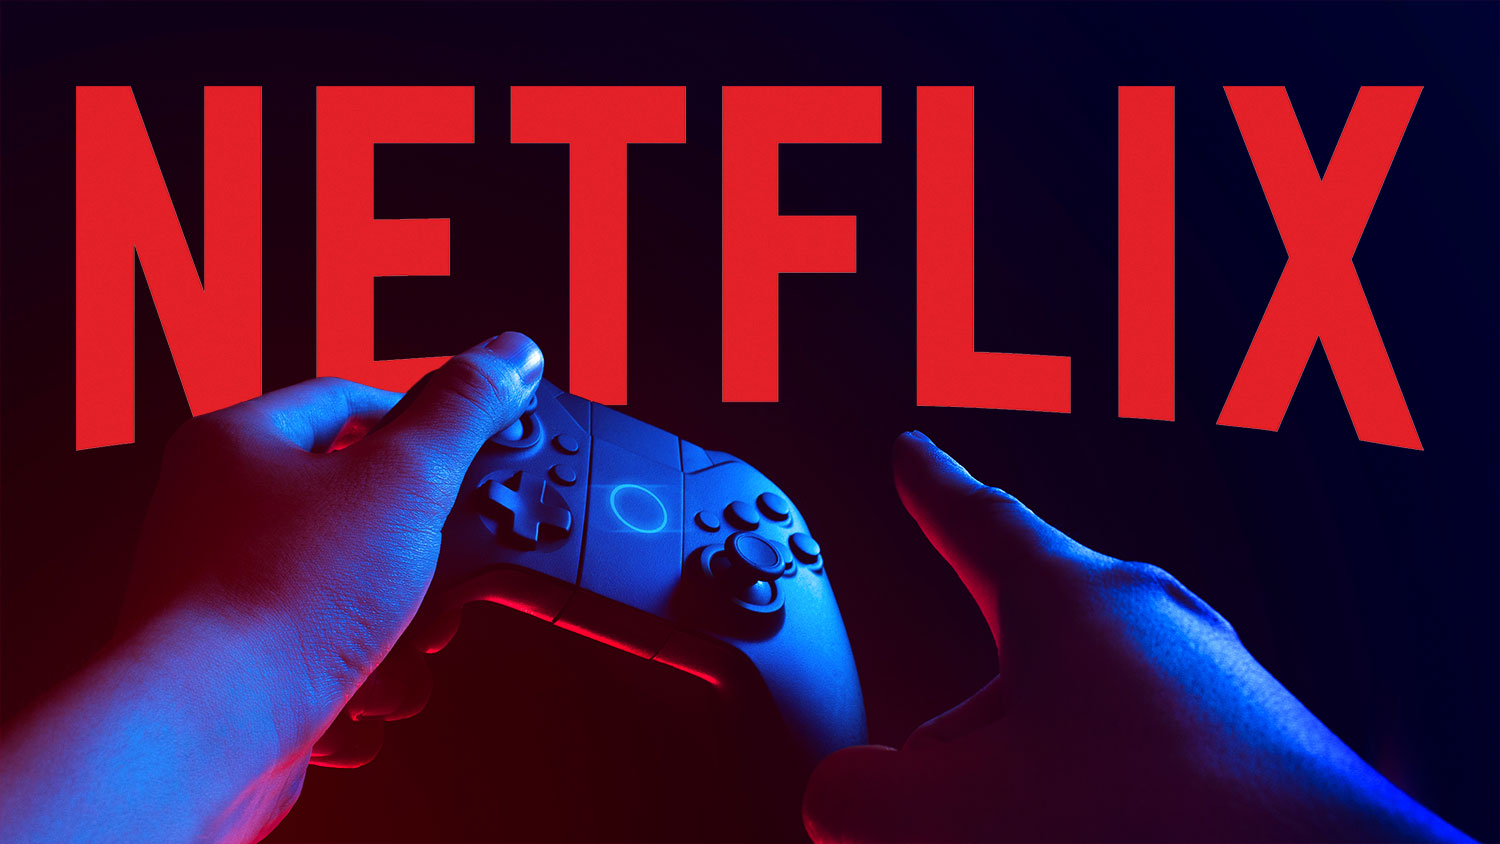 Netflix starts with game streaming, hires former EA boss